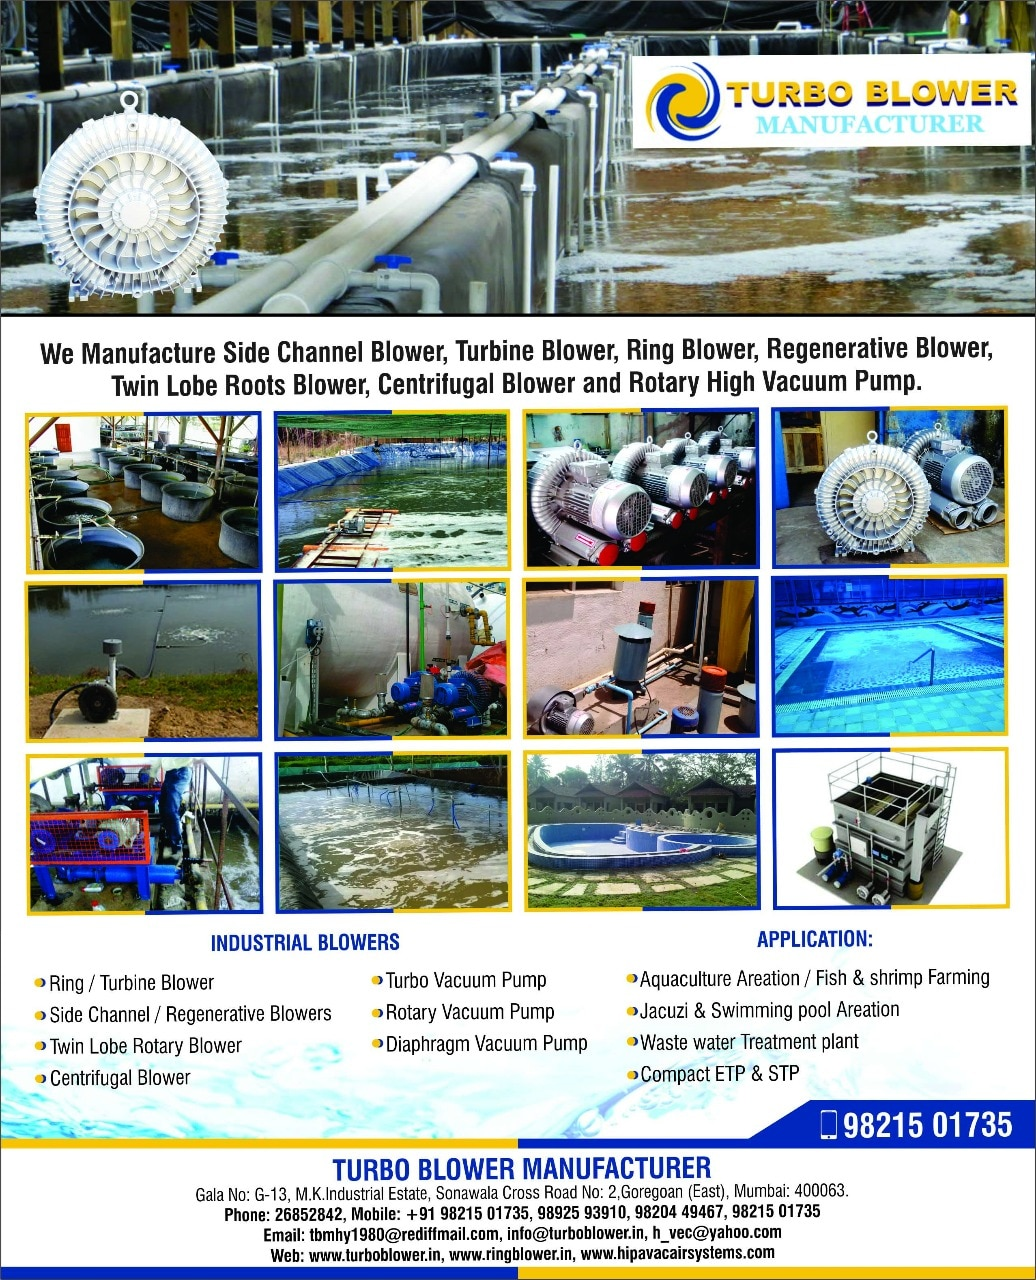 Best Services For Air blower for aquaculture, fish pond application.   For More Details Please Visit Us:- http://www.turboblower.co.in/